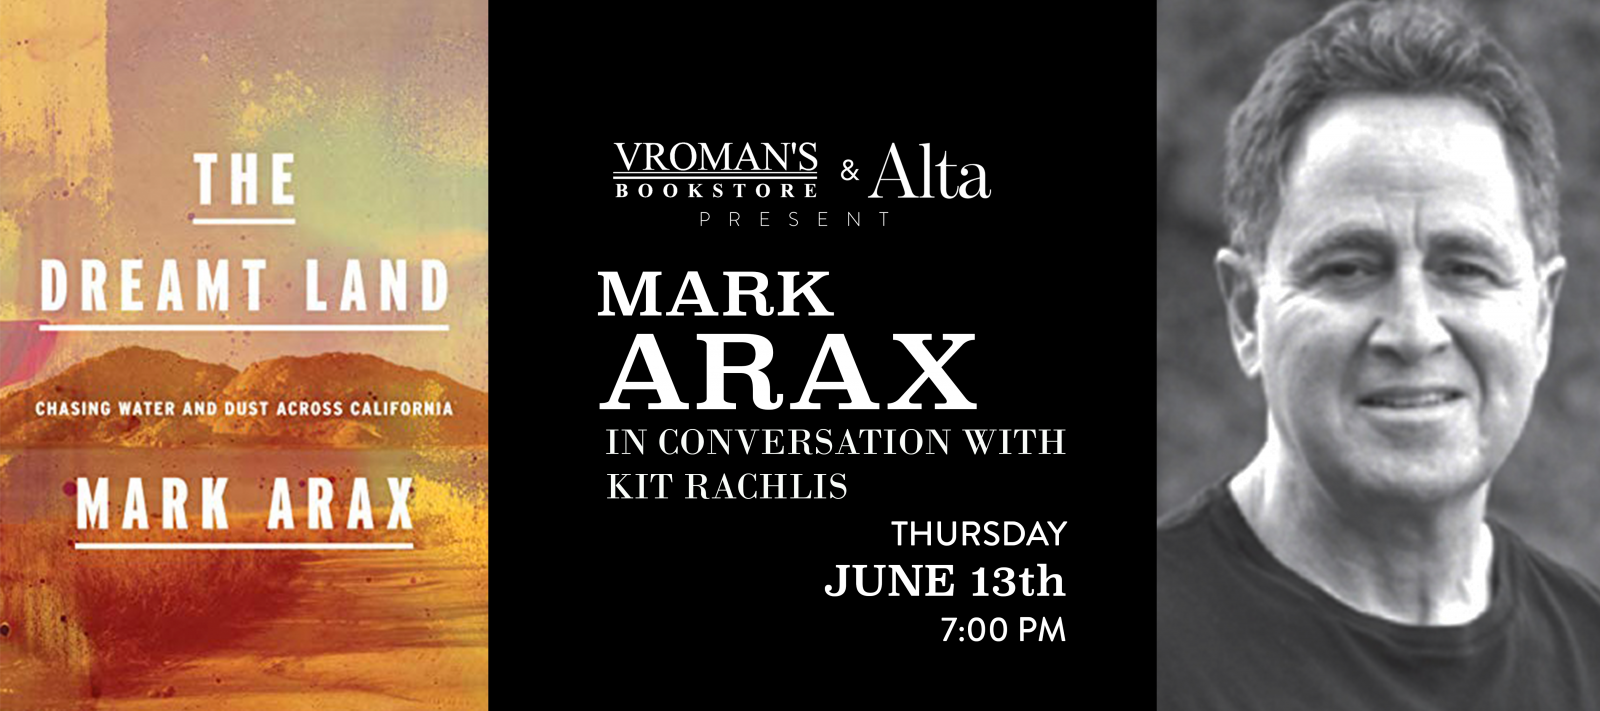 Mark Arax in conversation with Kit Rachlis, Thursday June 13th at 7pm